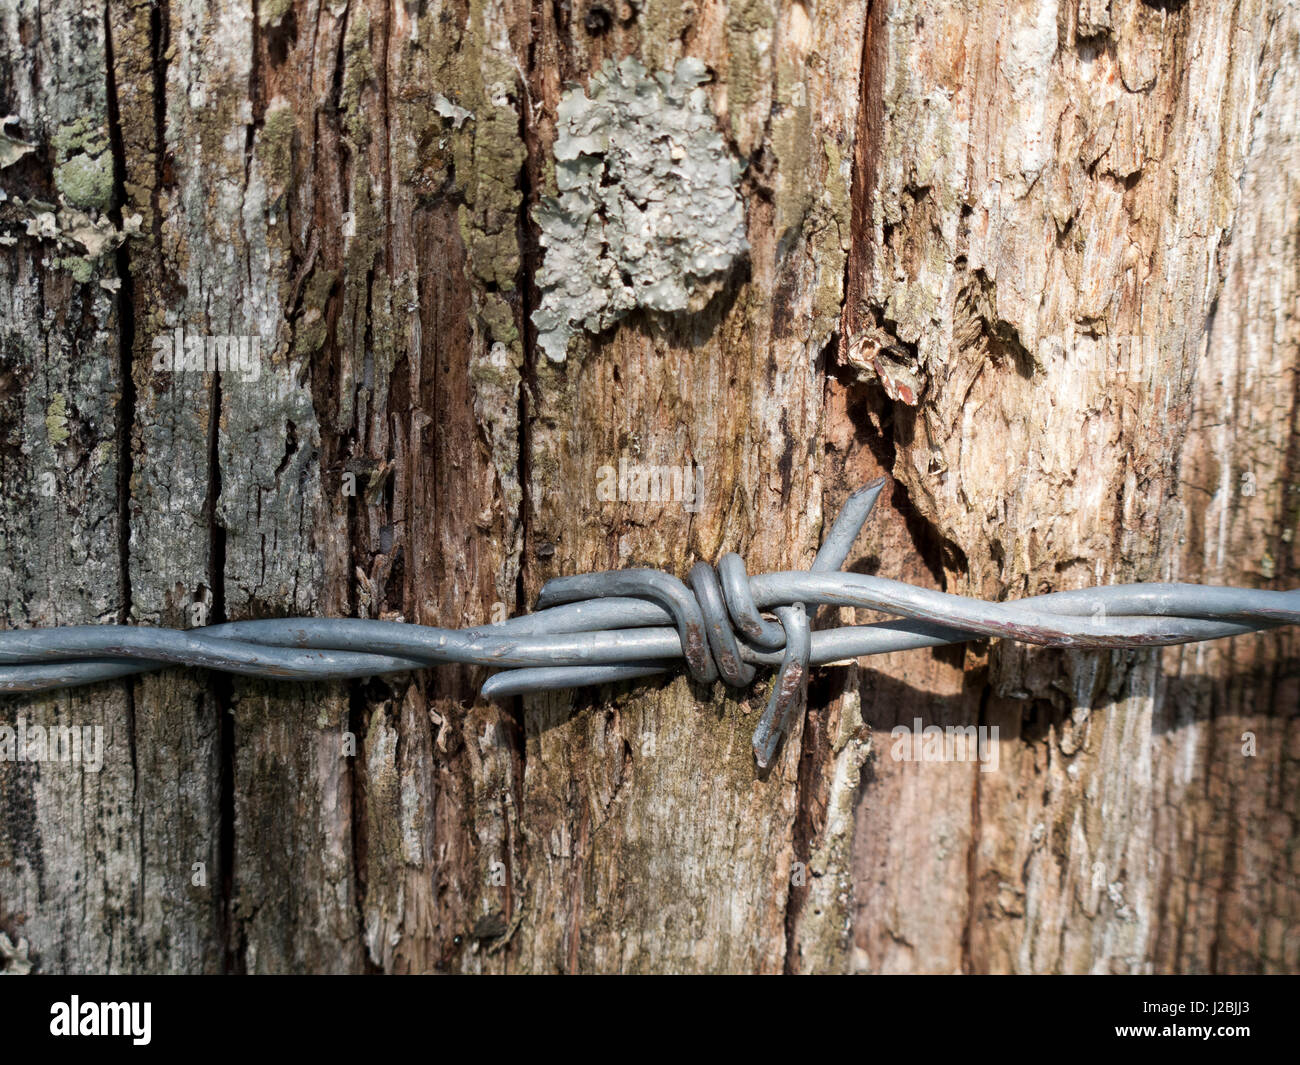 Wooden Fence Bark Stock Photos & Wooden Fence Bark Stock